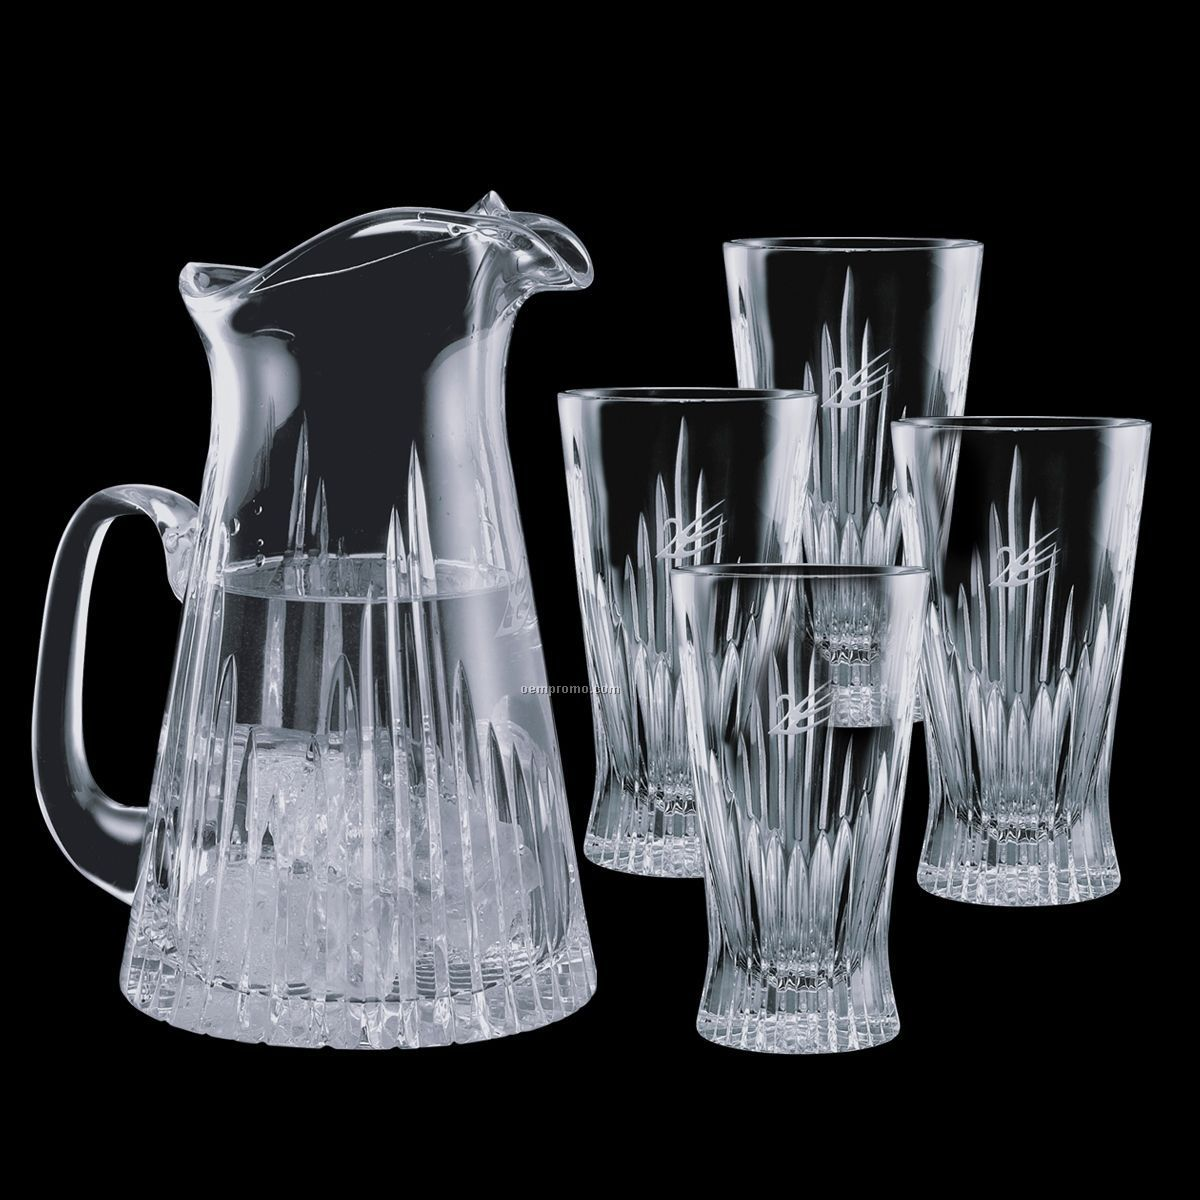 30 Oz. Cromwell Pitcher With 4 Cooler Glasses